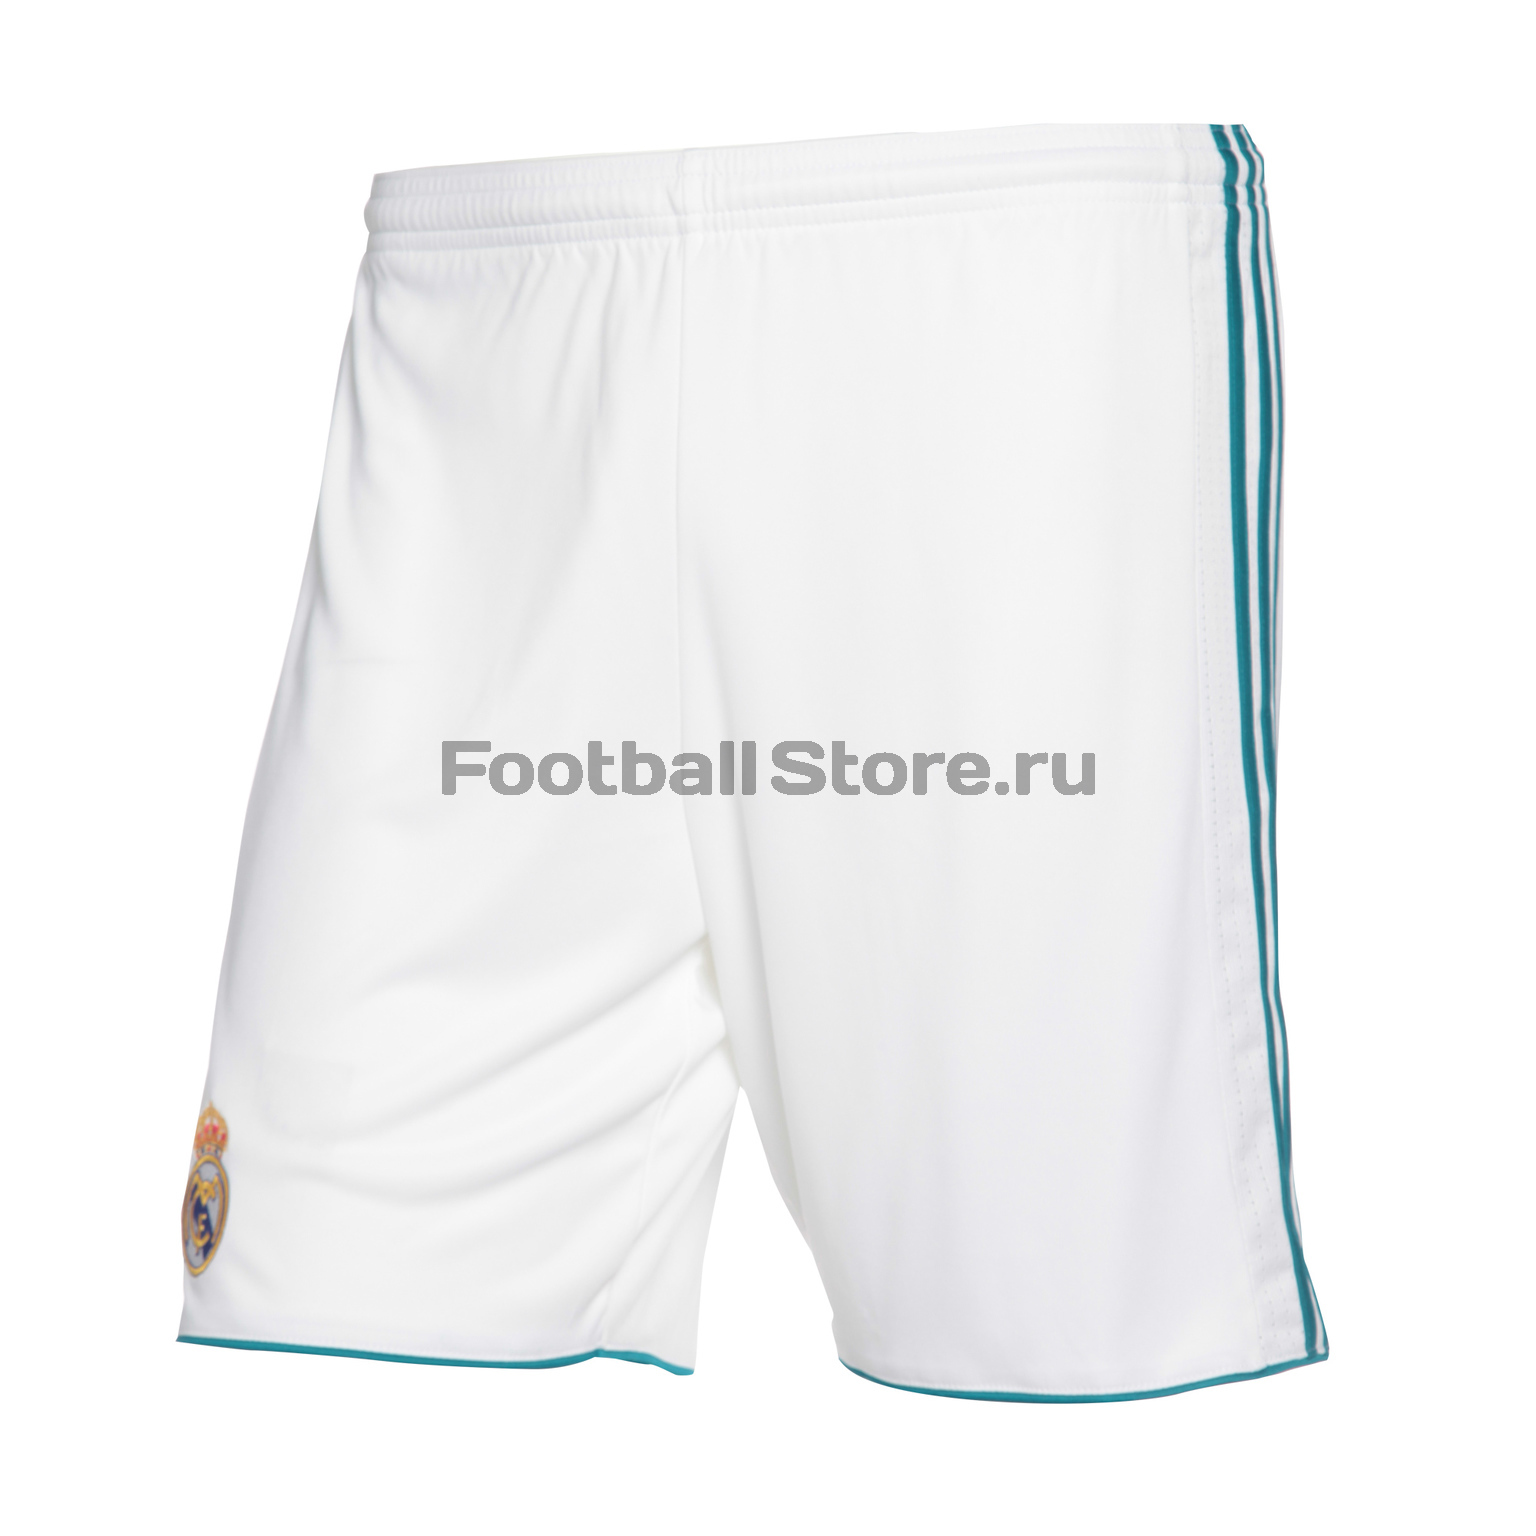 Real Madrid Adidas Шорты игровые Adidas Real Madrid Home BR8705 real madrid adidas свитер adidas real madrid euhybrid top bq7851